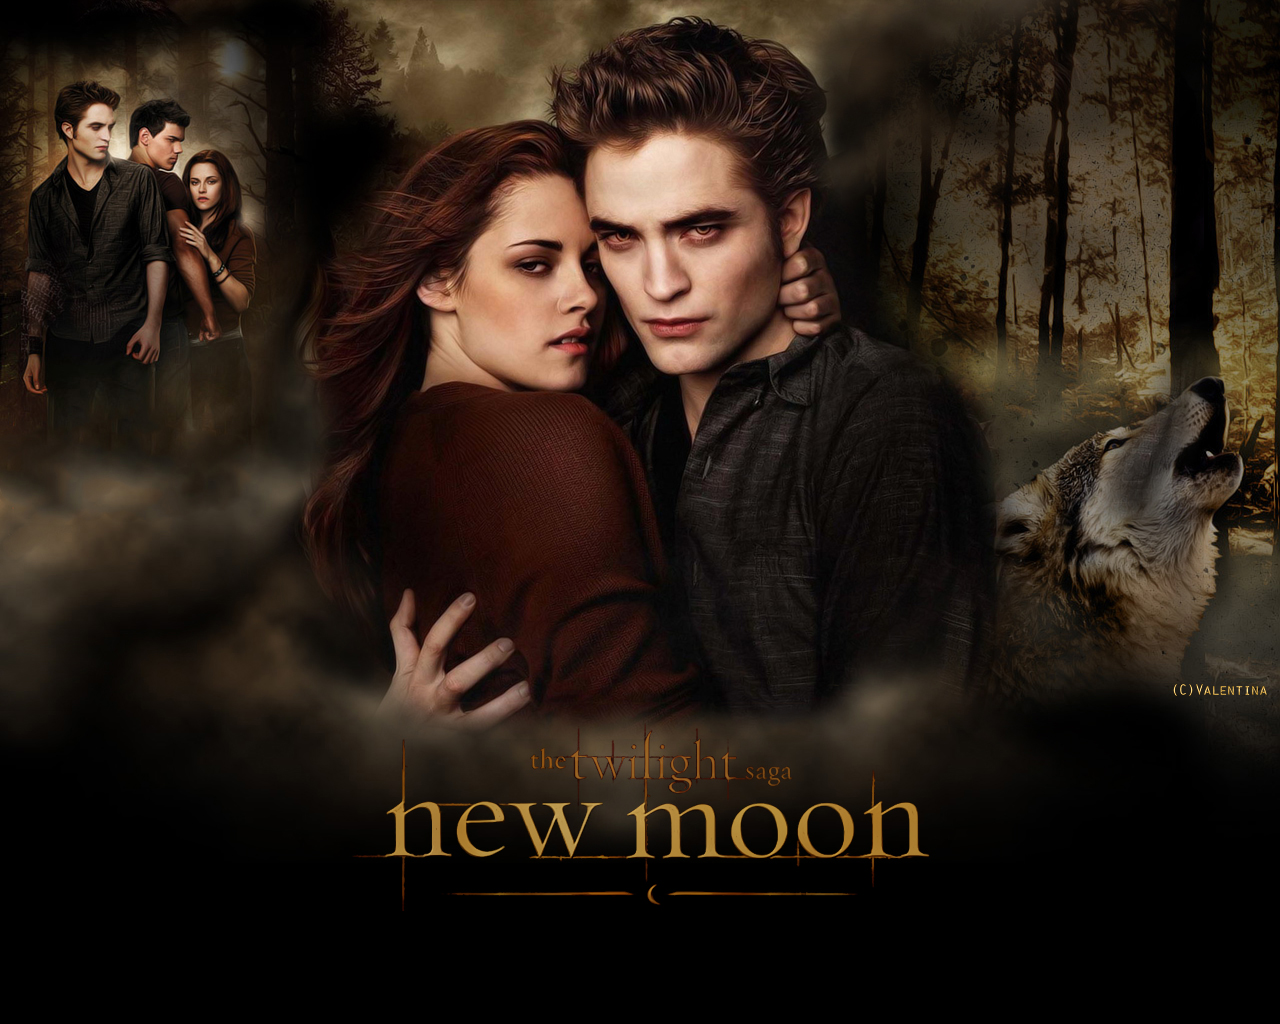 the twilight saga wallpapers free